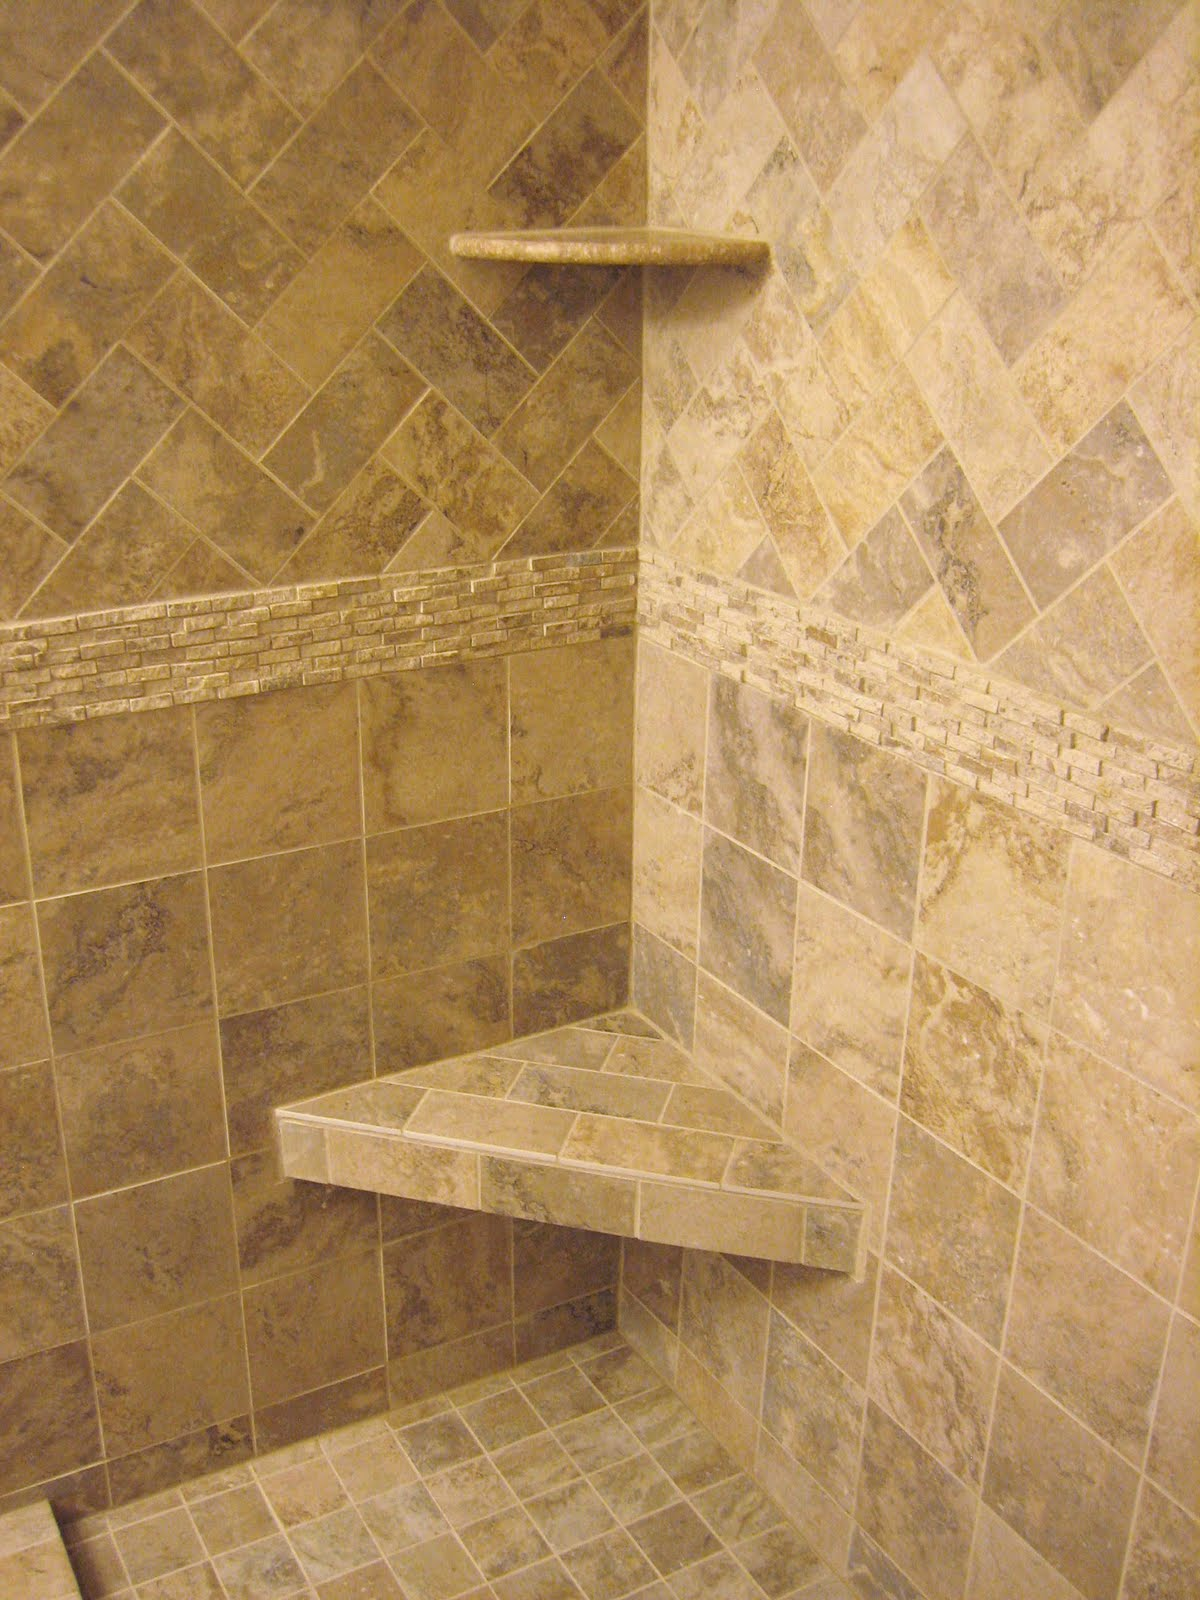 H winter showroom blog june 2010 for Bathroom tile ideas